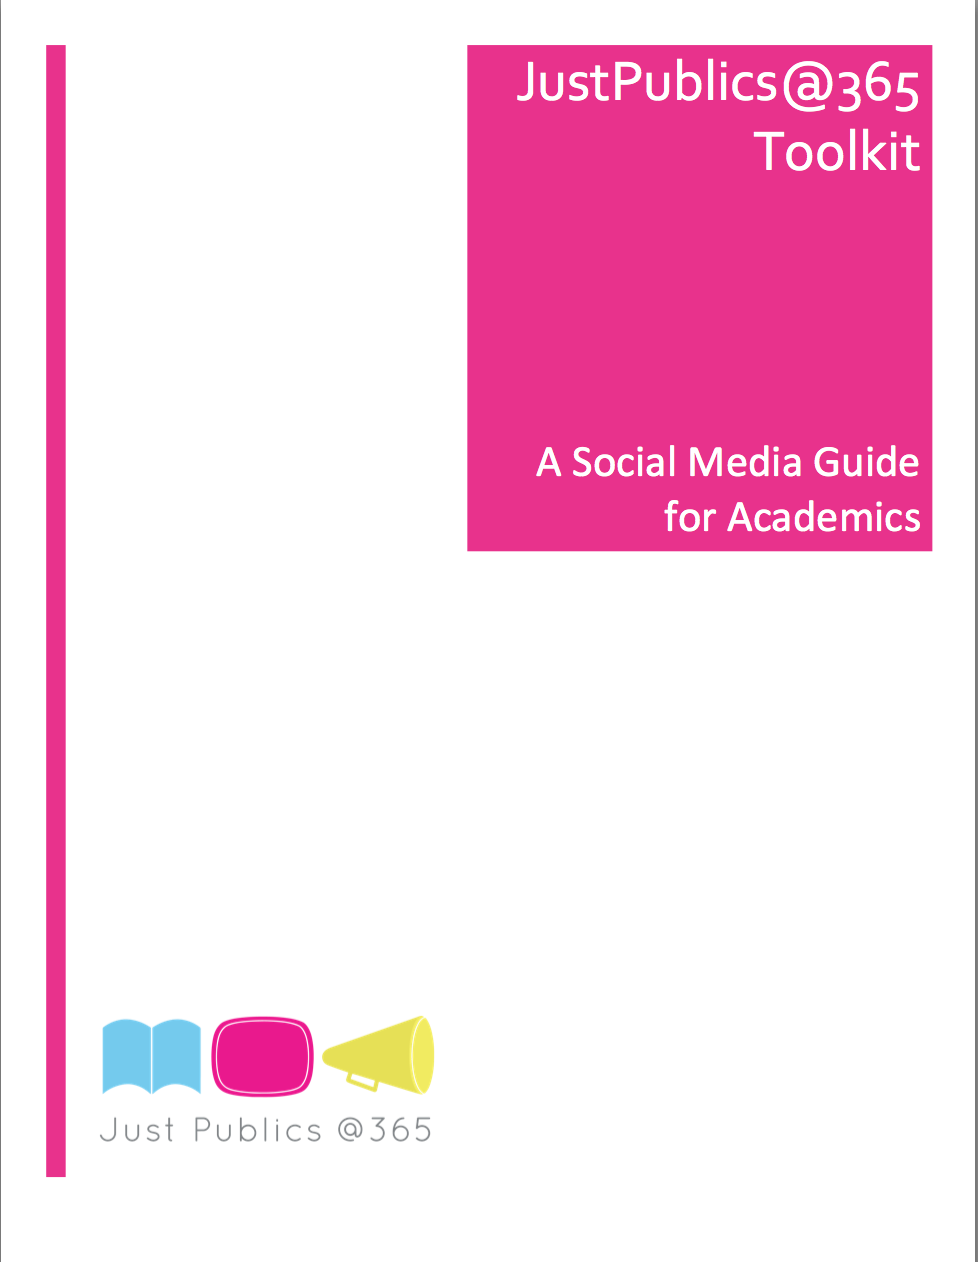 Cover image for JustPublics@365 Toolkit: A Social Media Guide For Academics